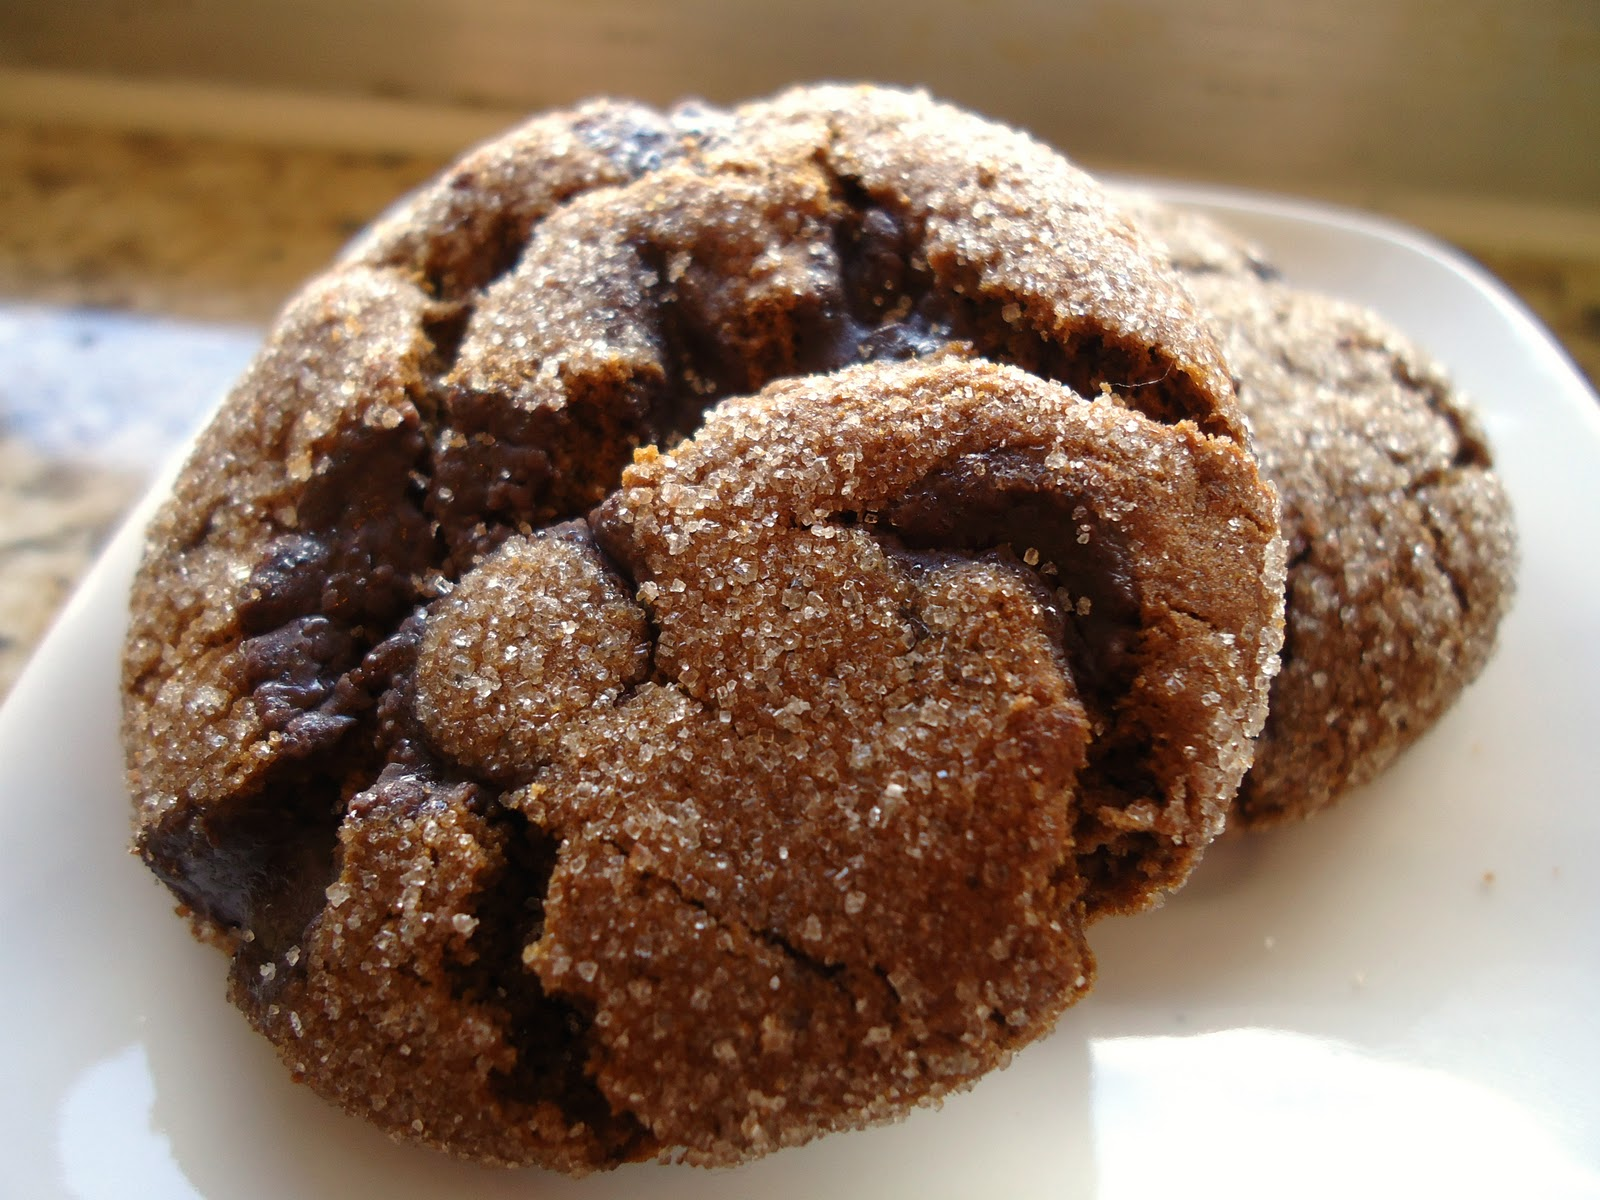 ... cookies gluten free gingerbread cookies chocolate gingerbread cookies